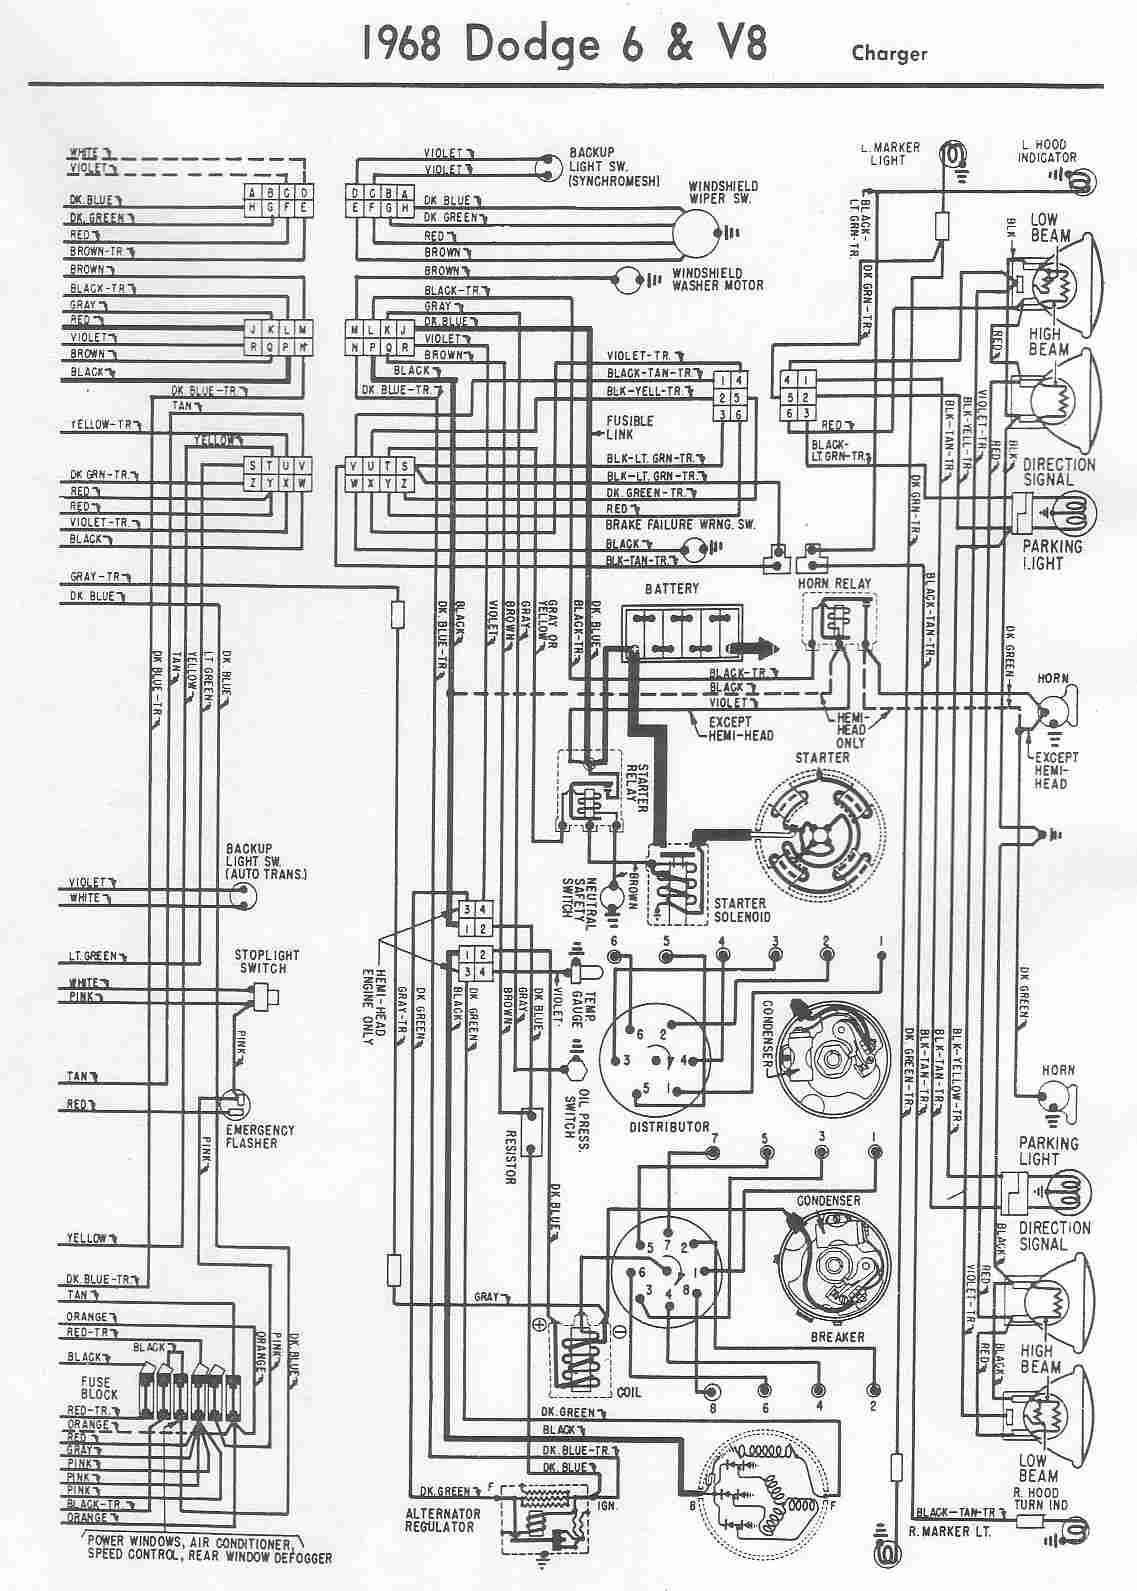 Chrysler 300 Wiring Diagrams Free Data Schema Starter Diagram 1972 Chevy Truck Pdf Simple 2007 Schematics